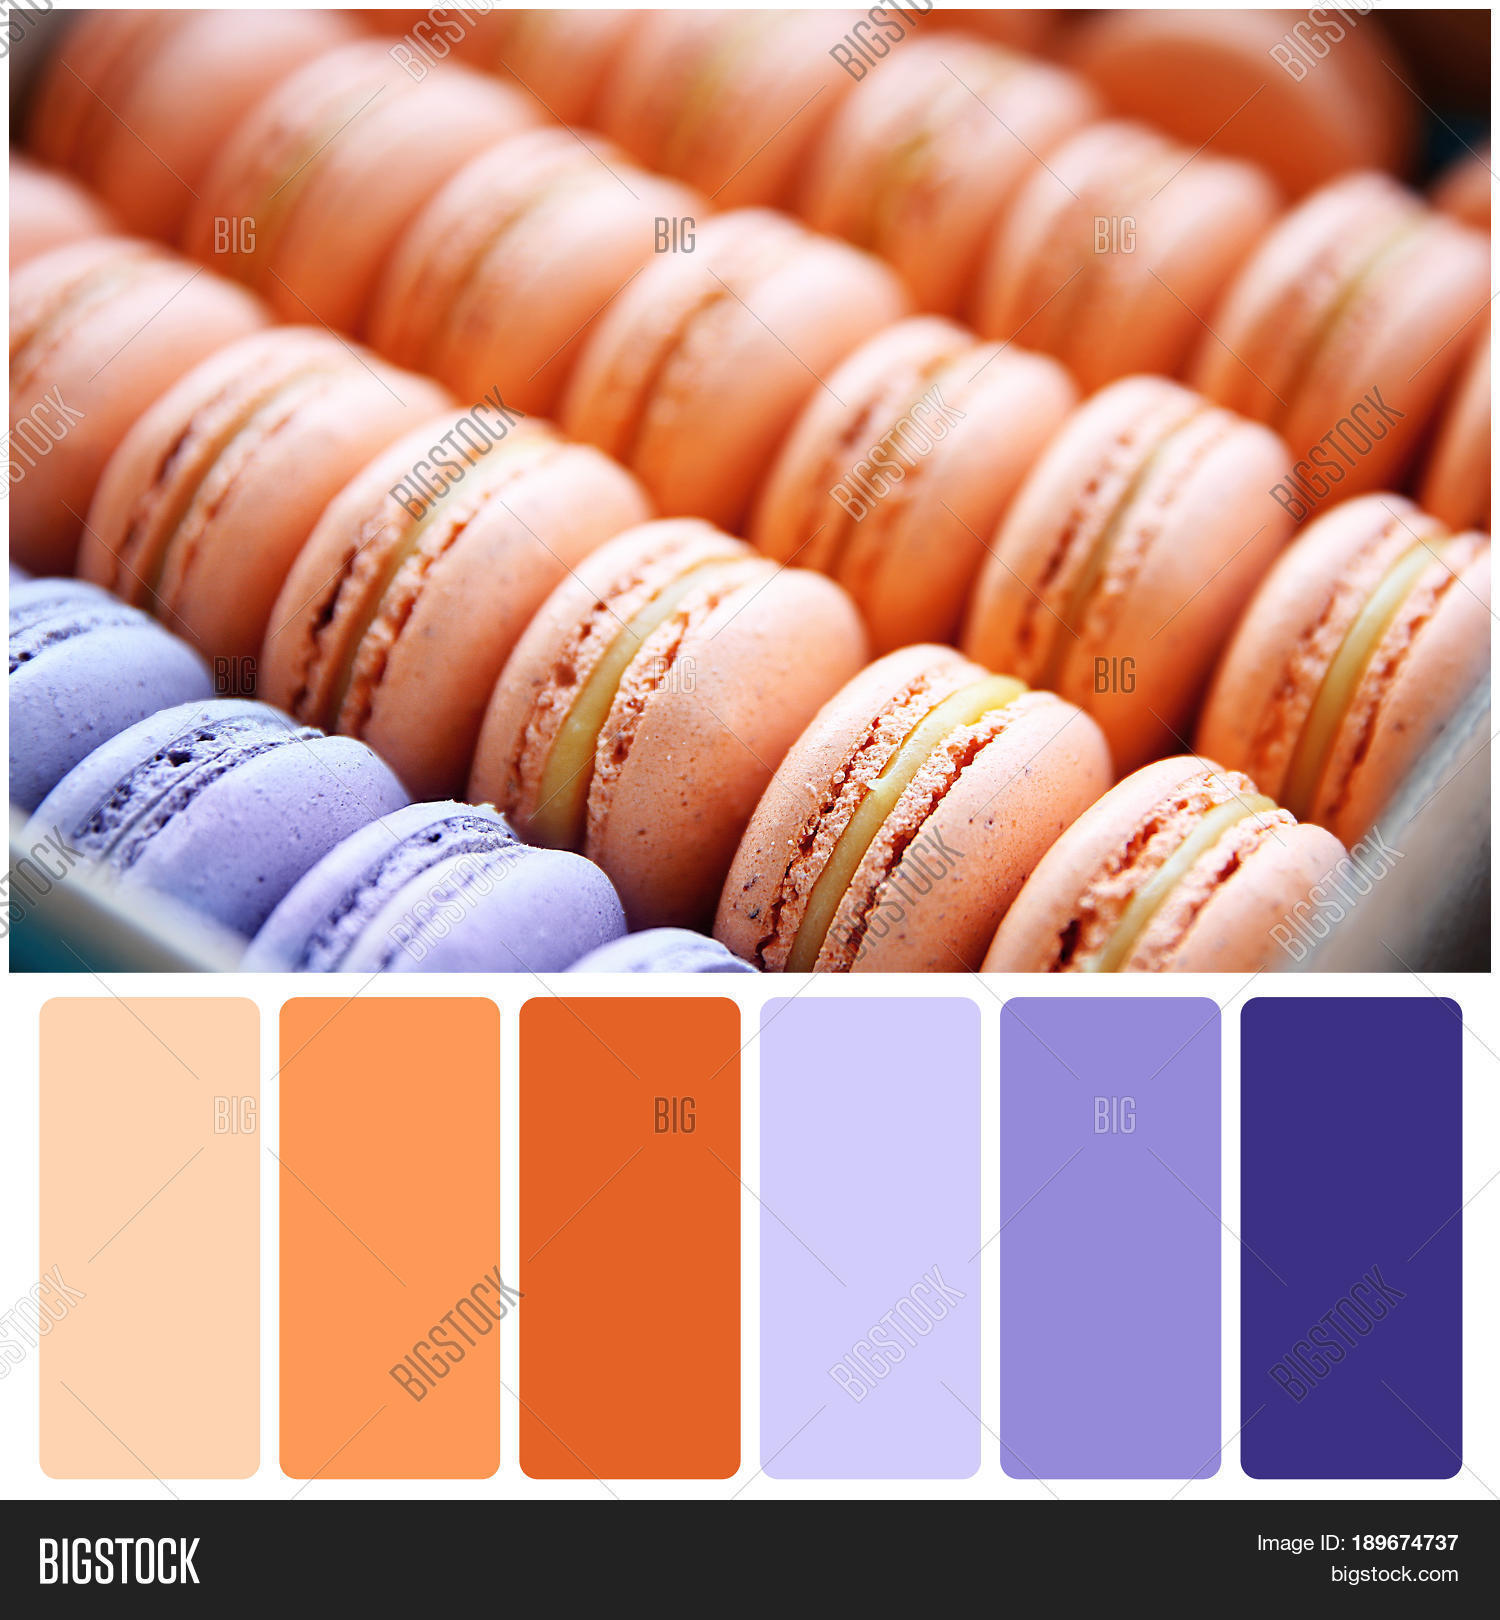 Apricot Color Matching Image & Photo (Free Trial) | Bigstock